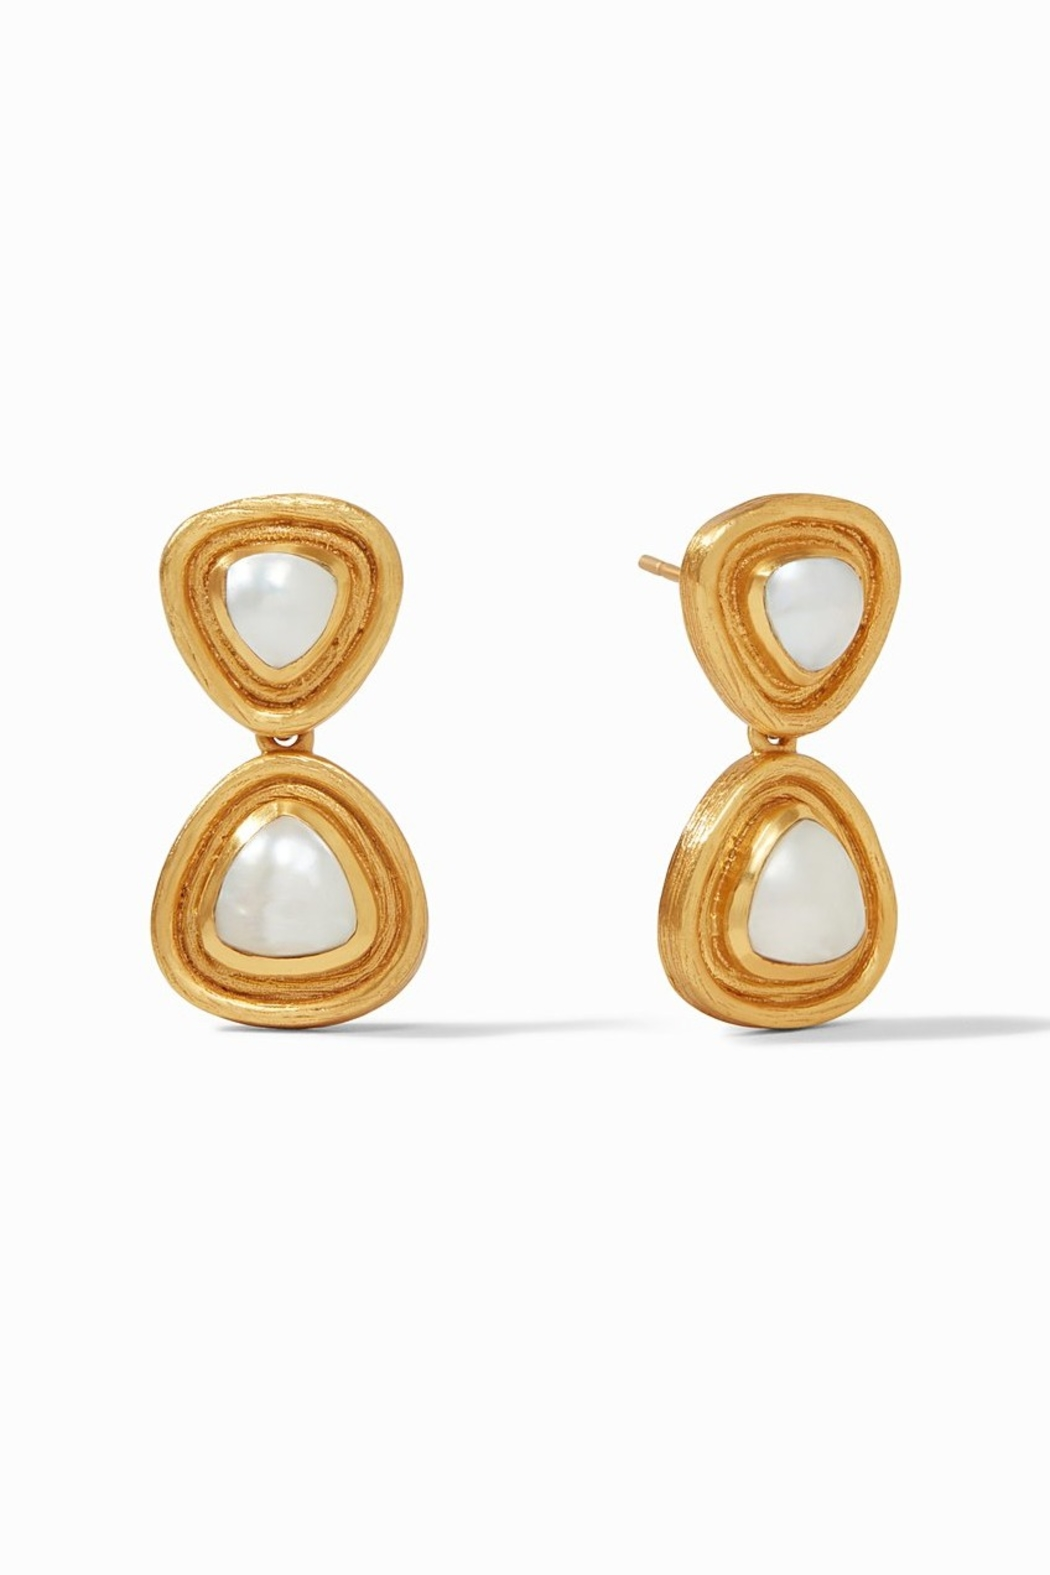 Julie Vos Barcelona Midi Earring Gold Pearl - Main Image